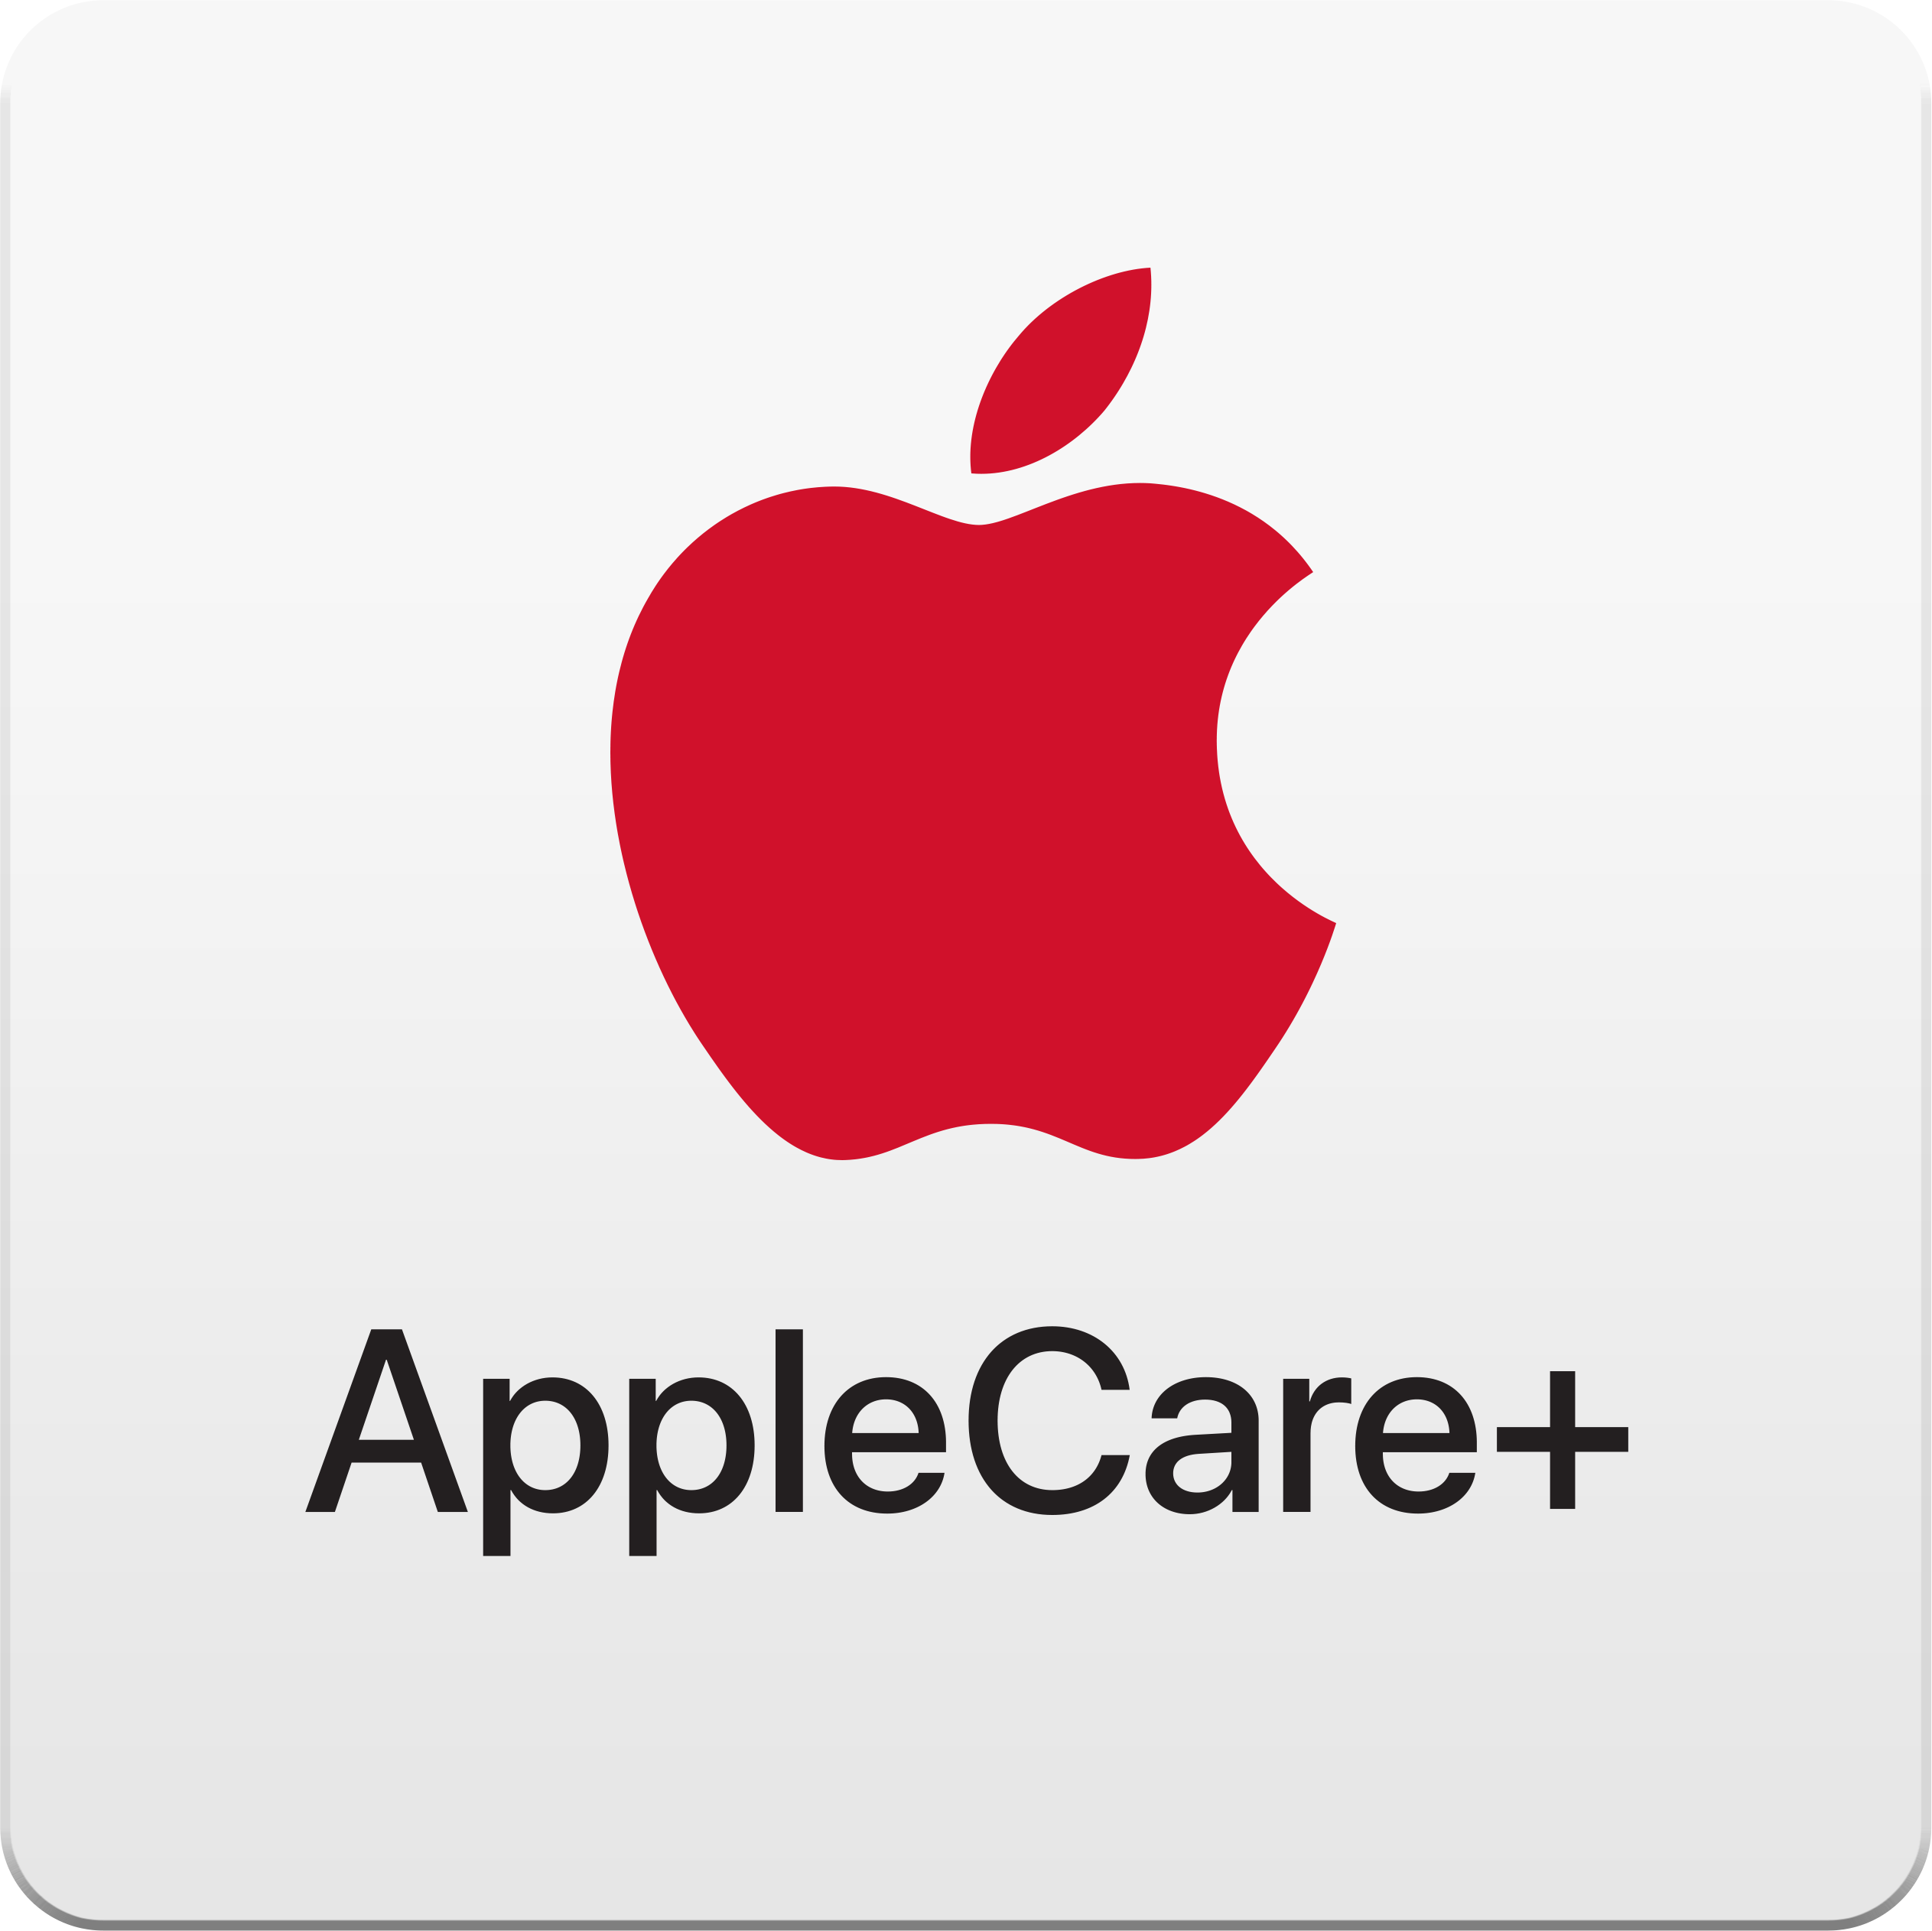 AppleCare+ for iMac